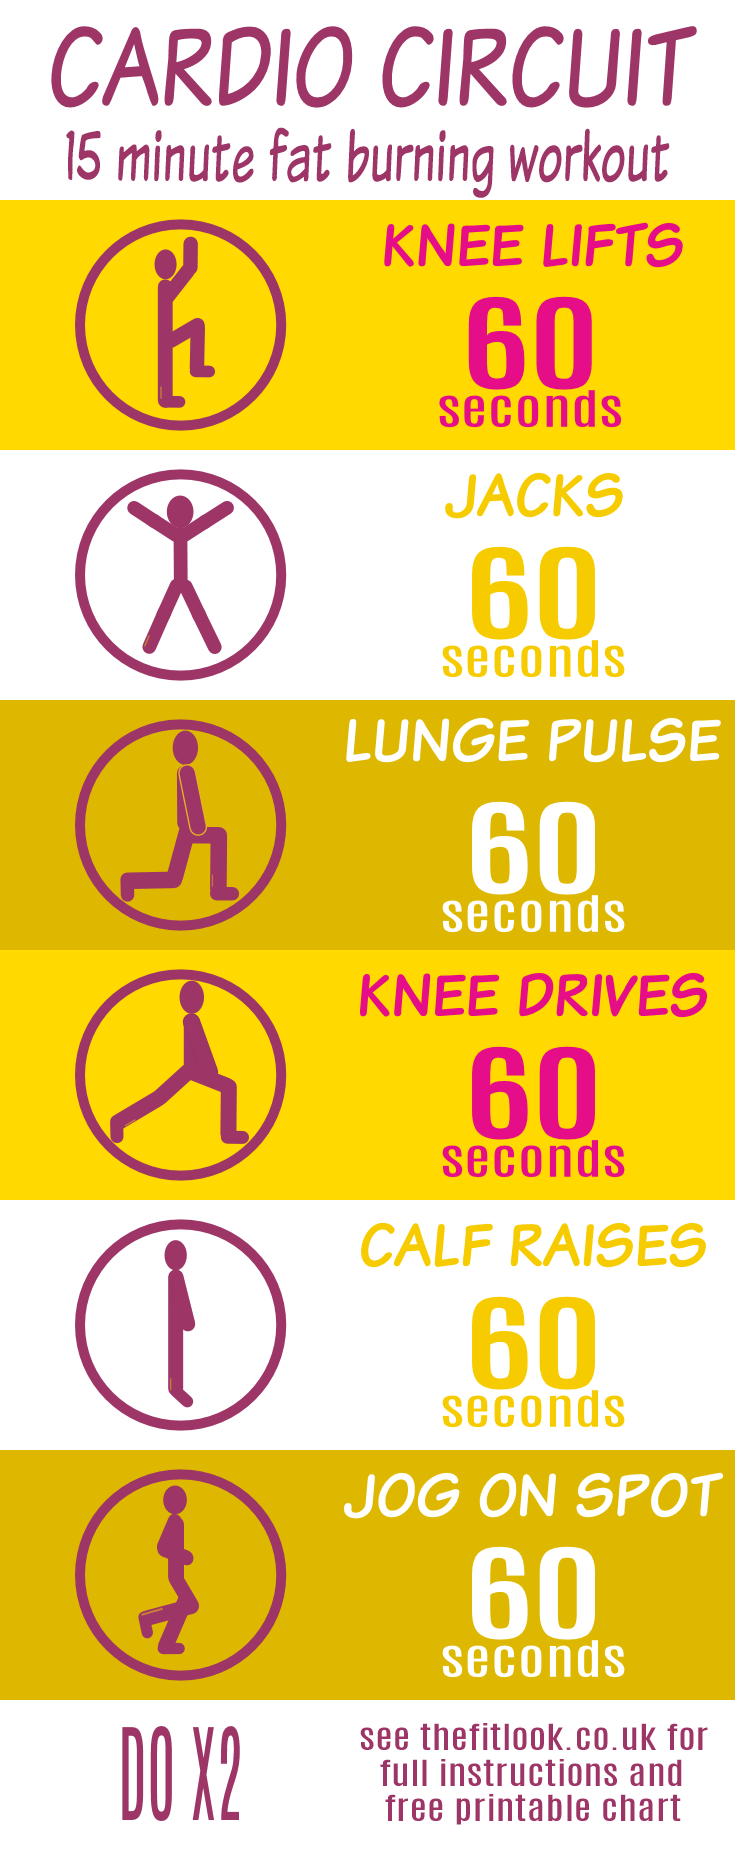 Cardio Workout 15 Minute Fitness Circuit With Free Download 15 Minute Workout Cardio Workout Cardio Circuit